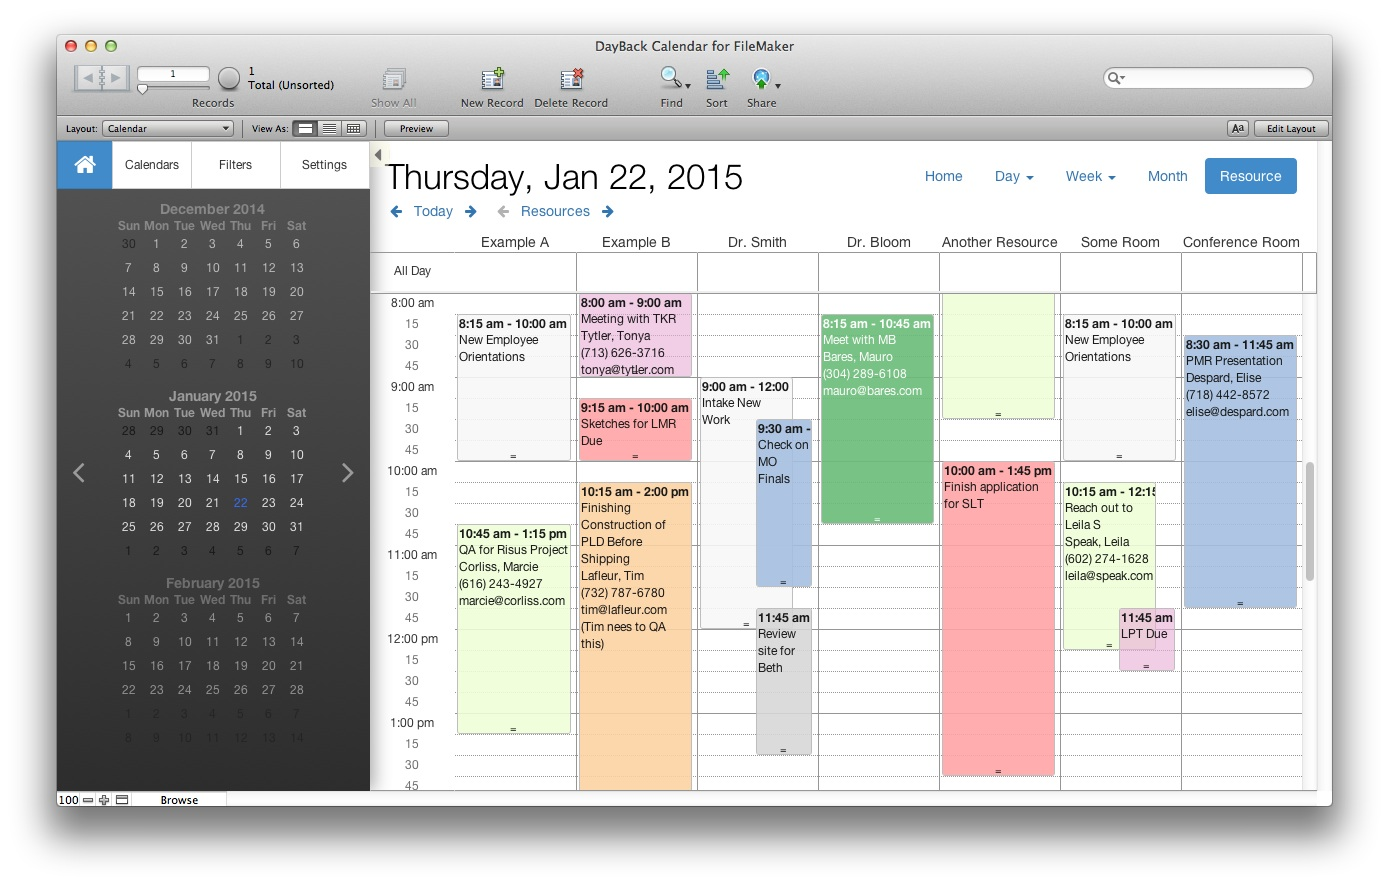 FileMaker Add-Ons Now 25% Off - SeedCode's Year-End Sales Image